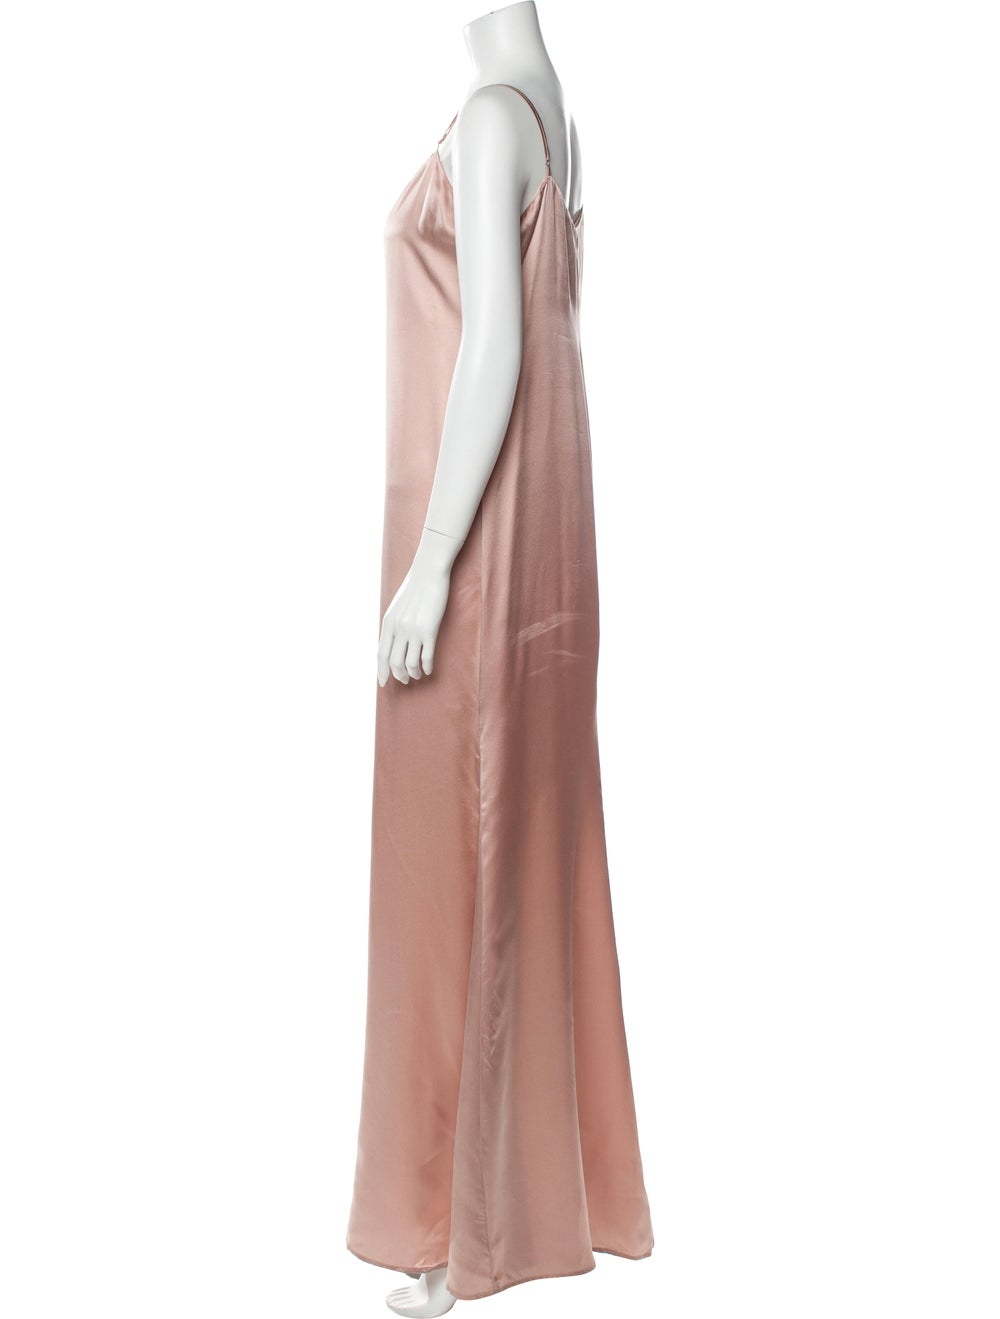 Reformation Silk Long Dress Pink - image 2